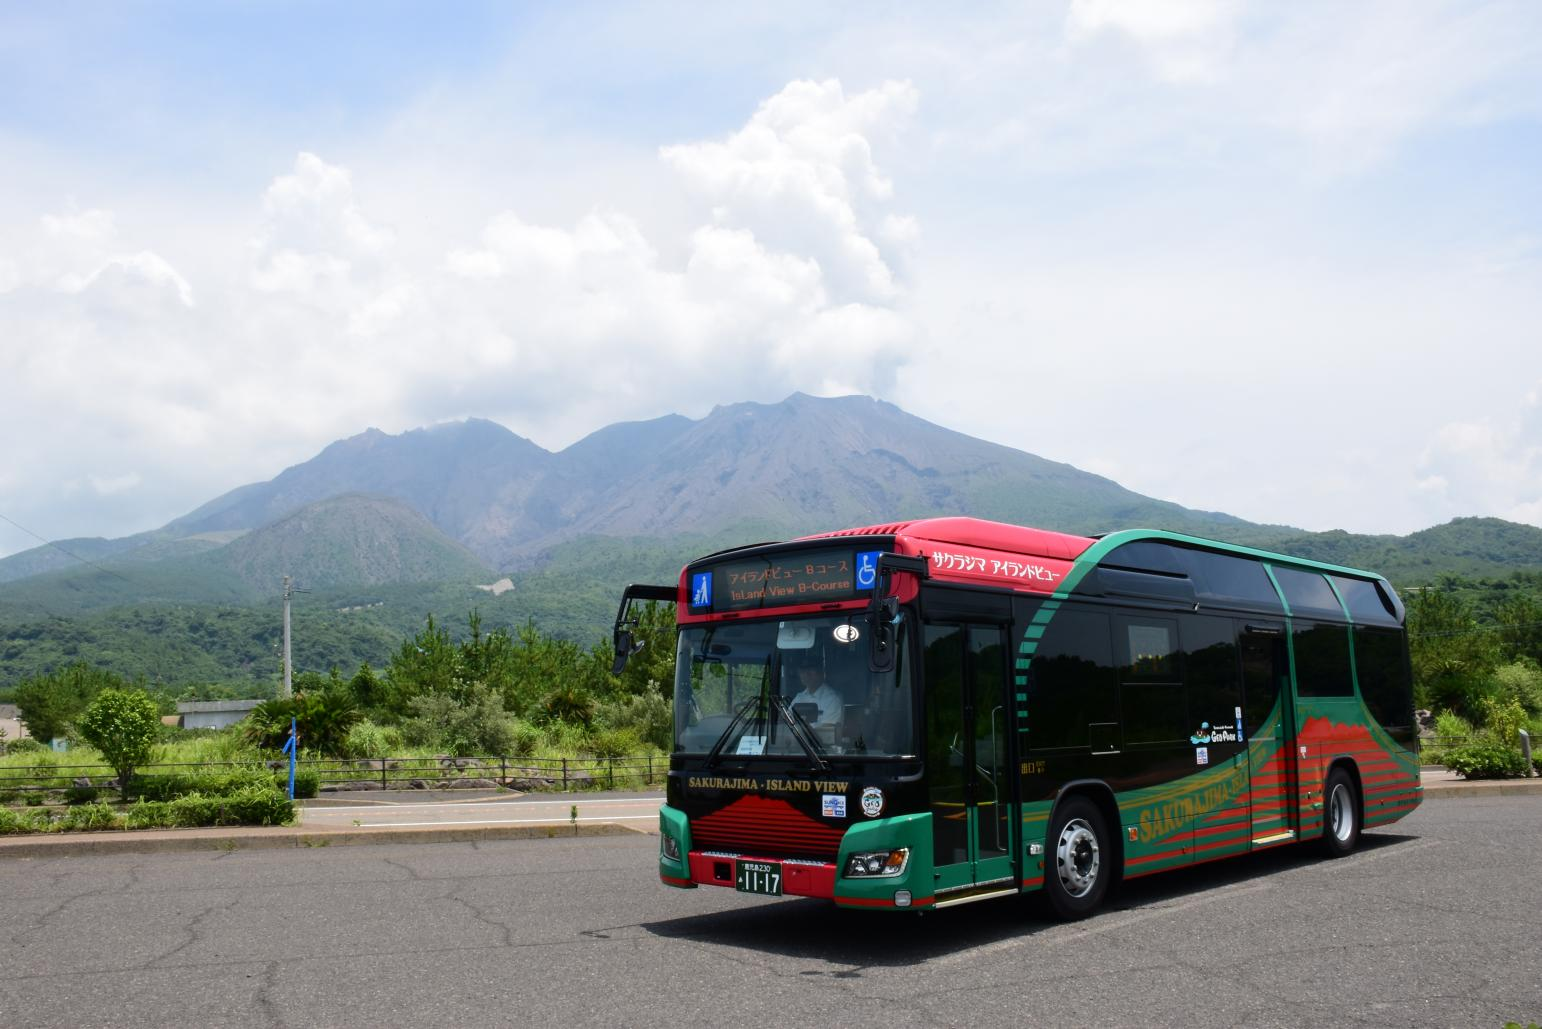 Sakurajima Island View bus is a useful way to get around Sakurajima.-0